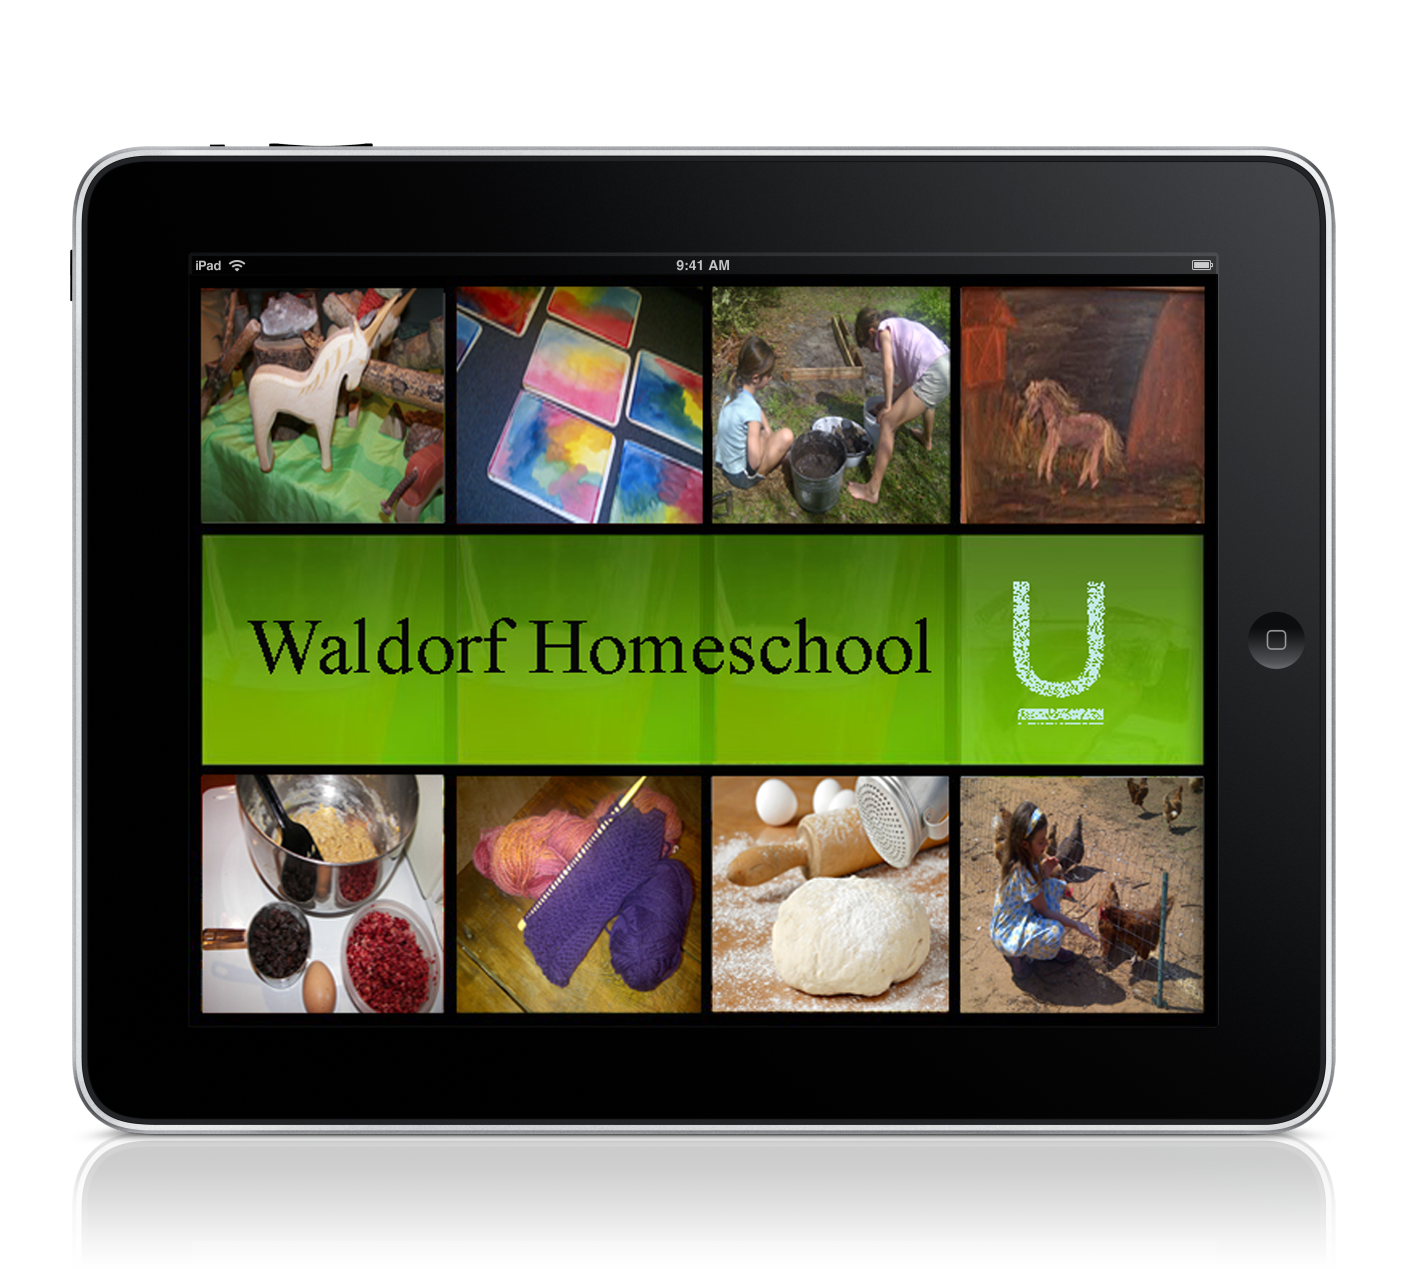 Waldorf Homeschool U